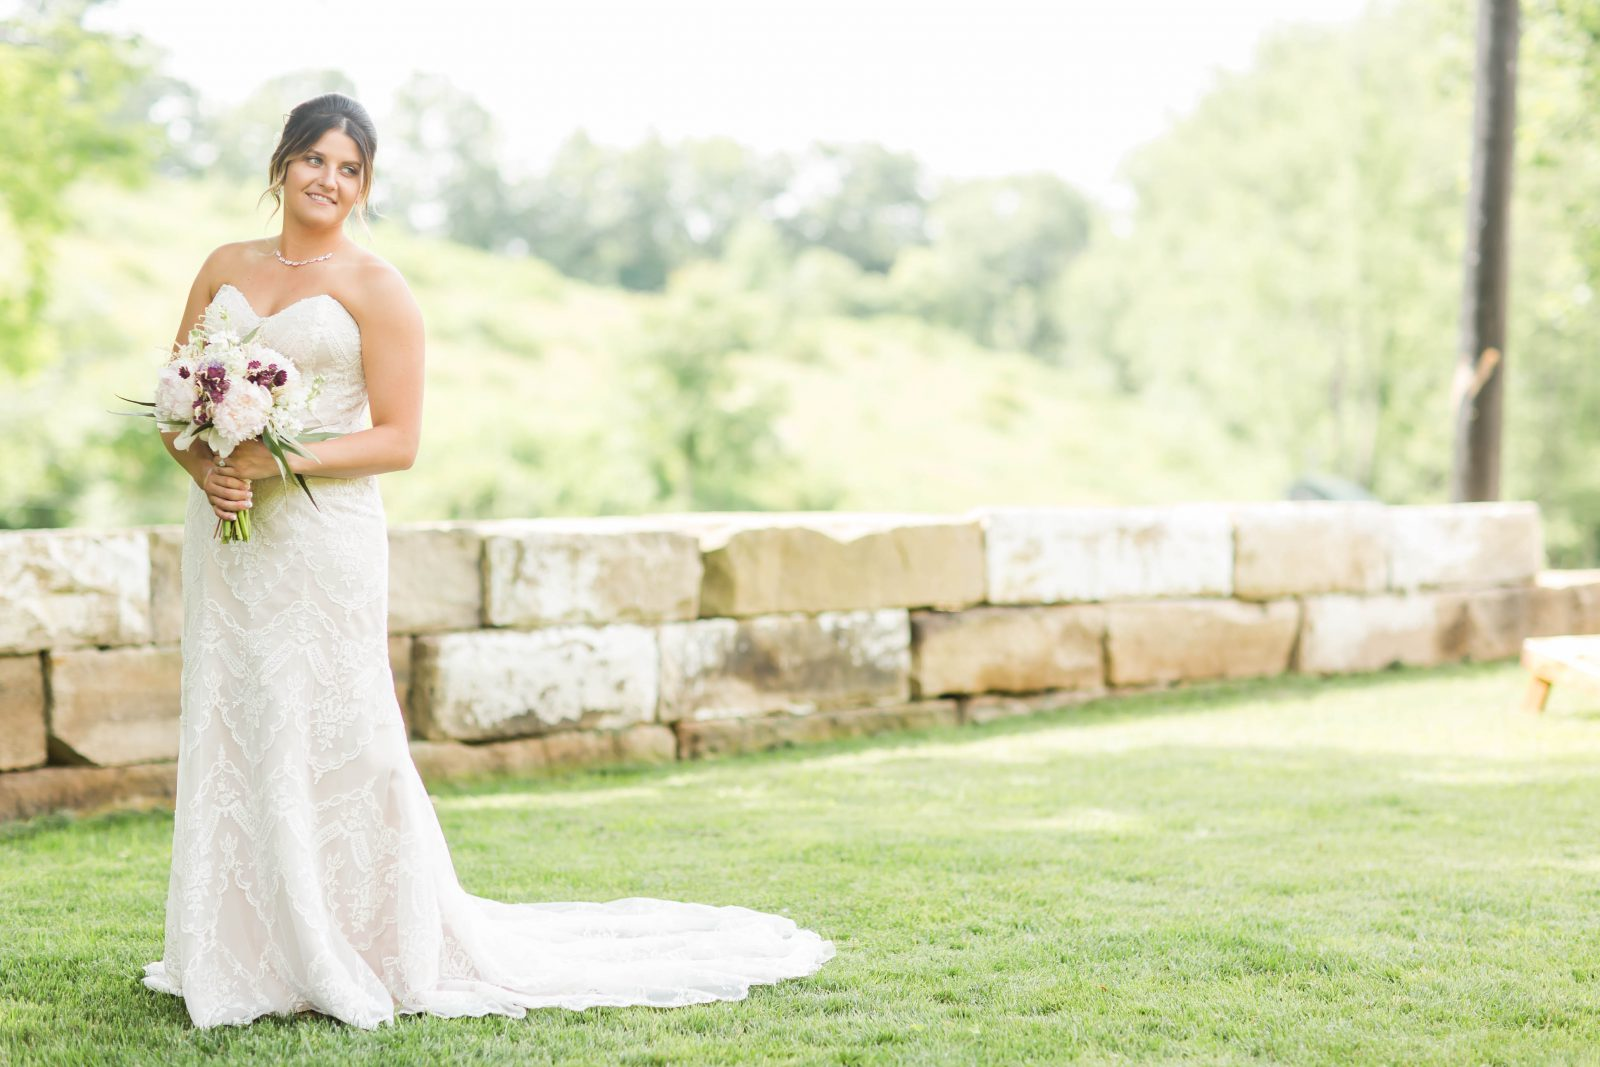 rivercrest-farm-summer-wedding-loren-jackson-photography-68